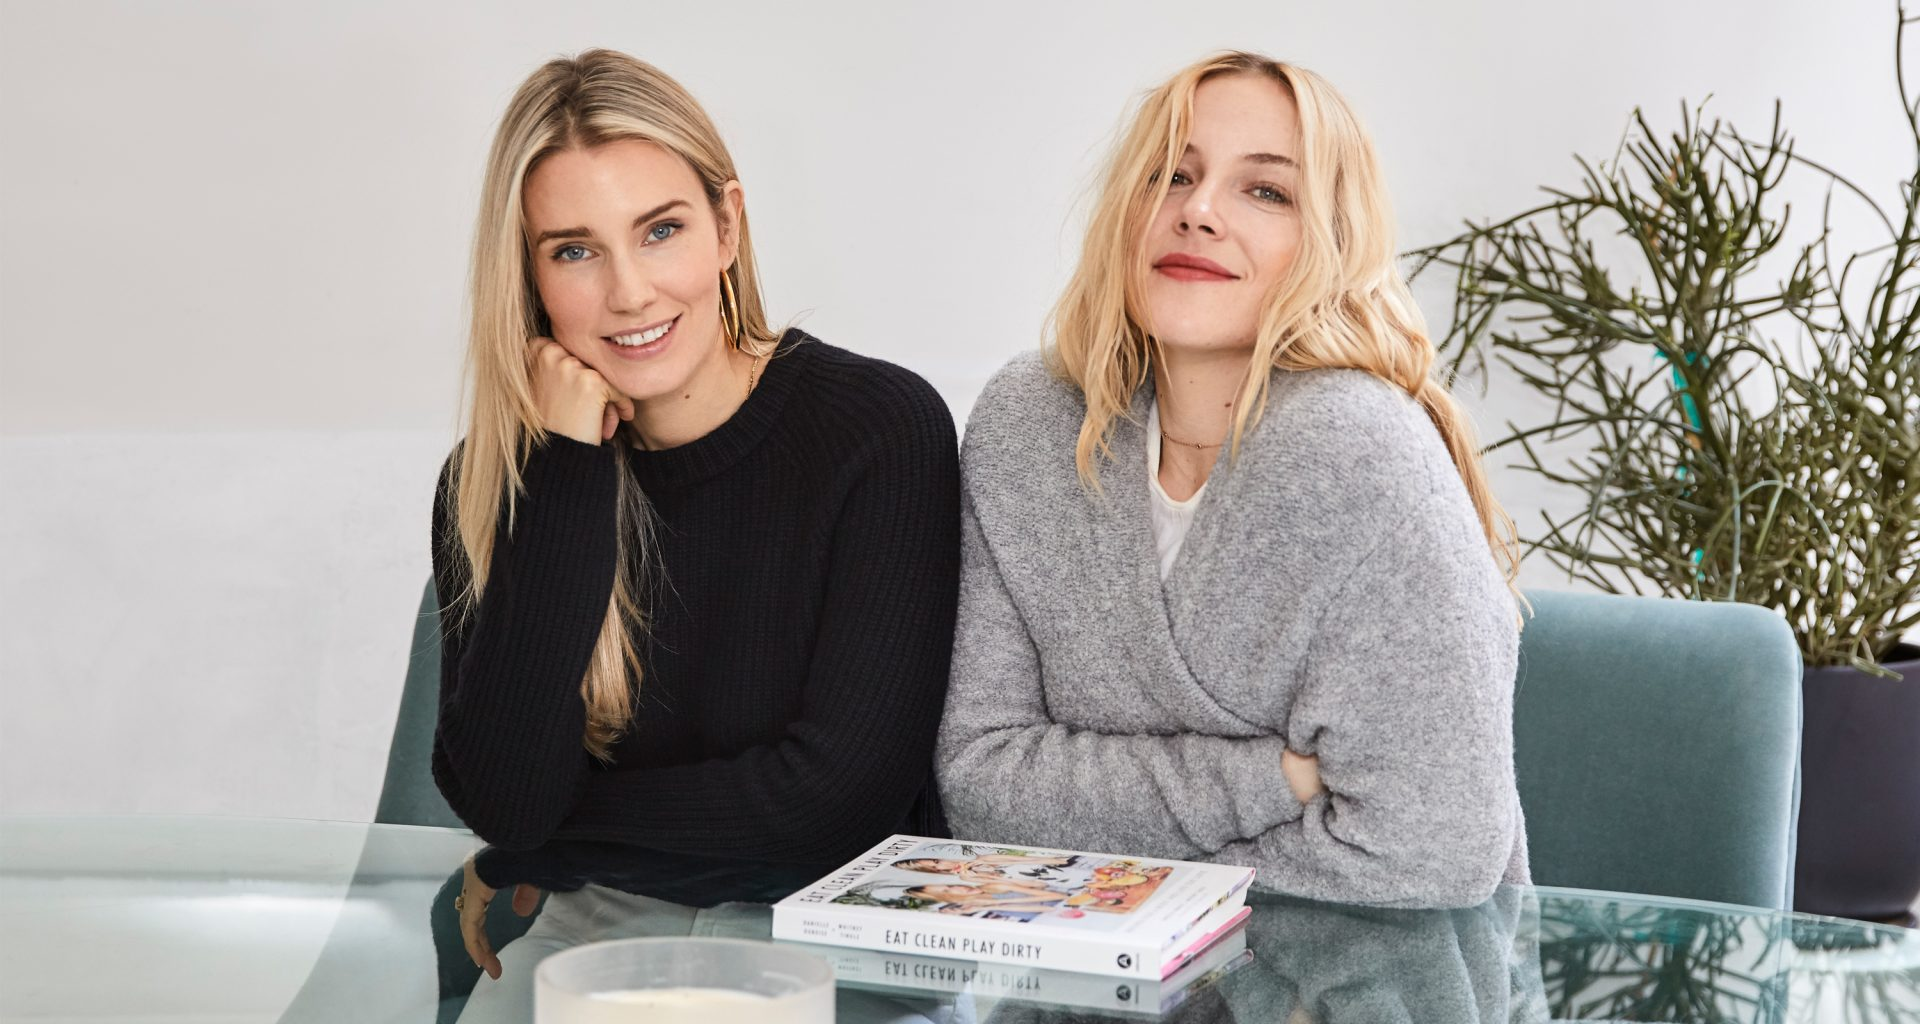 Sakara's Whitney Tingle & Danielle Duboise on the No-Diet Diet